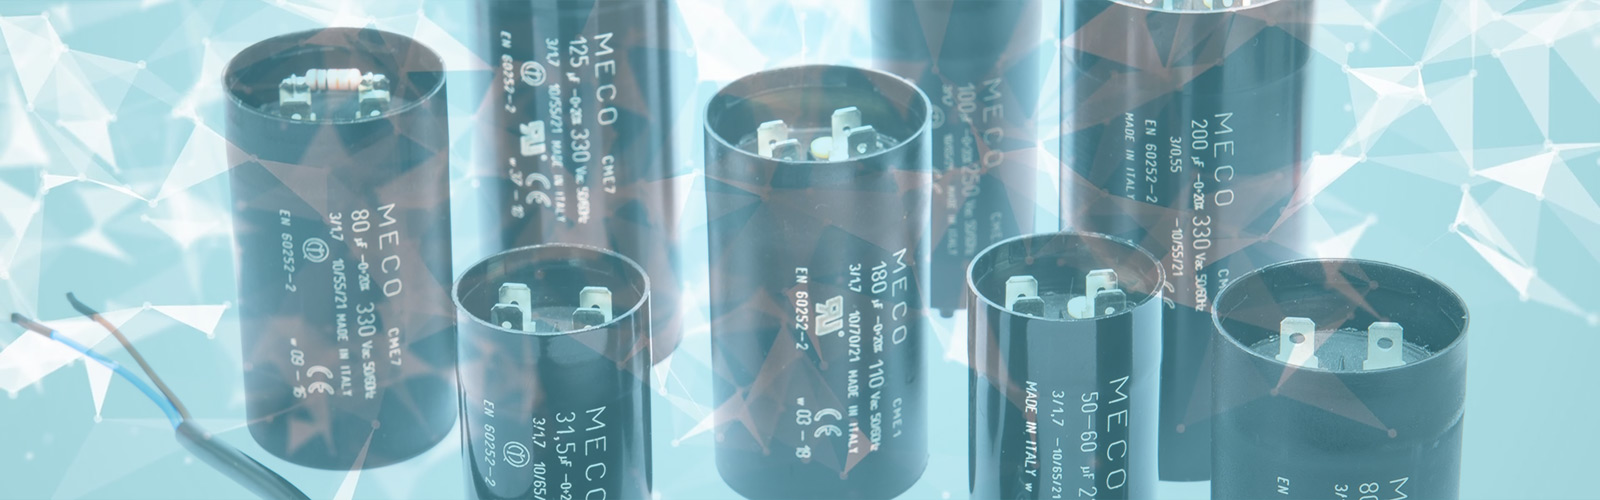 , ELECTROLYTIC CAPACITORS, Meco Capacitors, Meco Capacitors